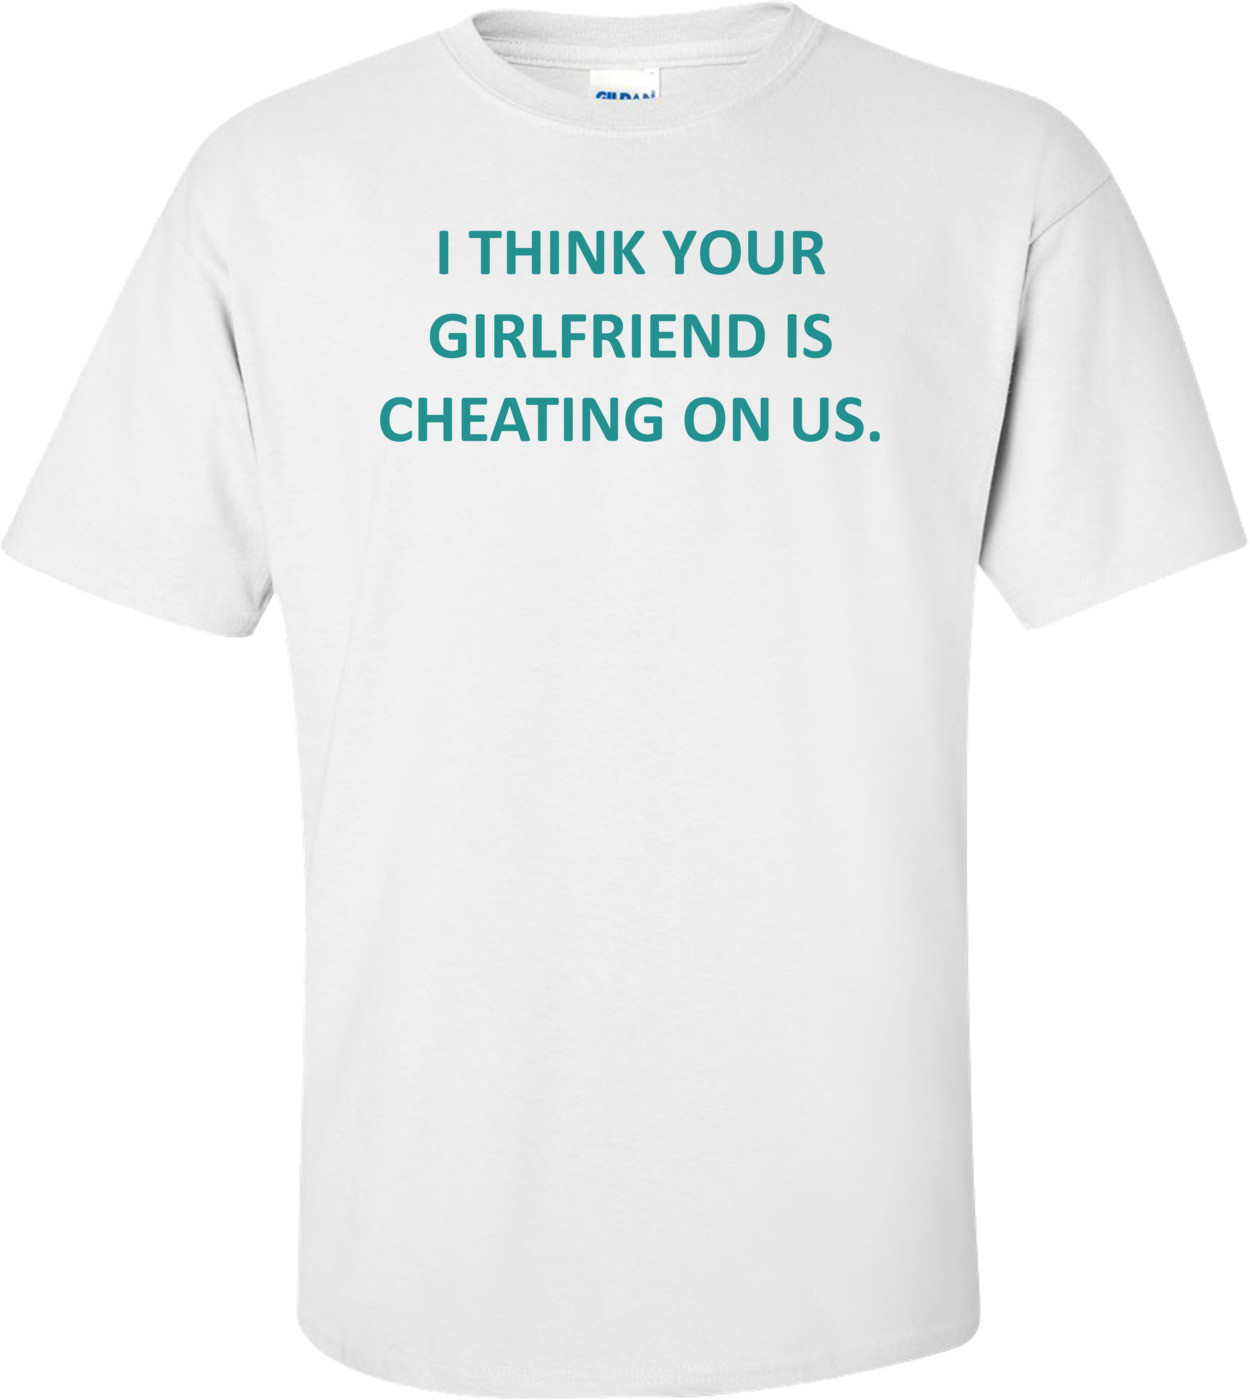 I THINK YOUR GIRLFRIEND IS CHEATING ON US. Shirt